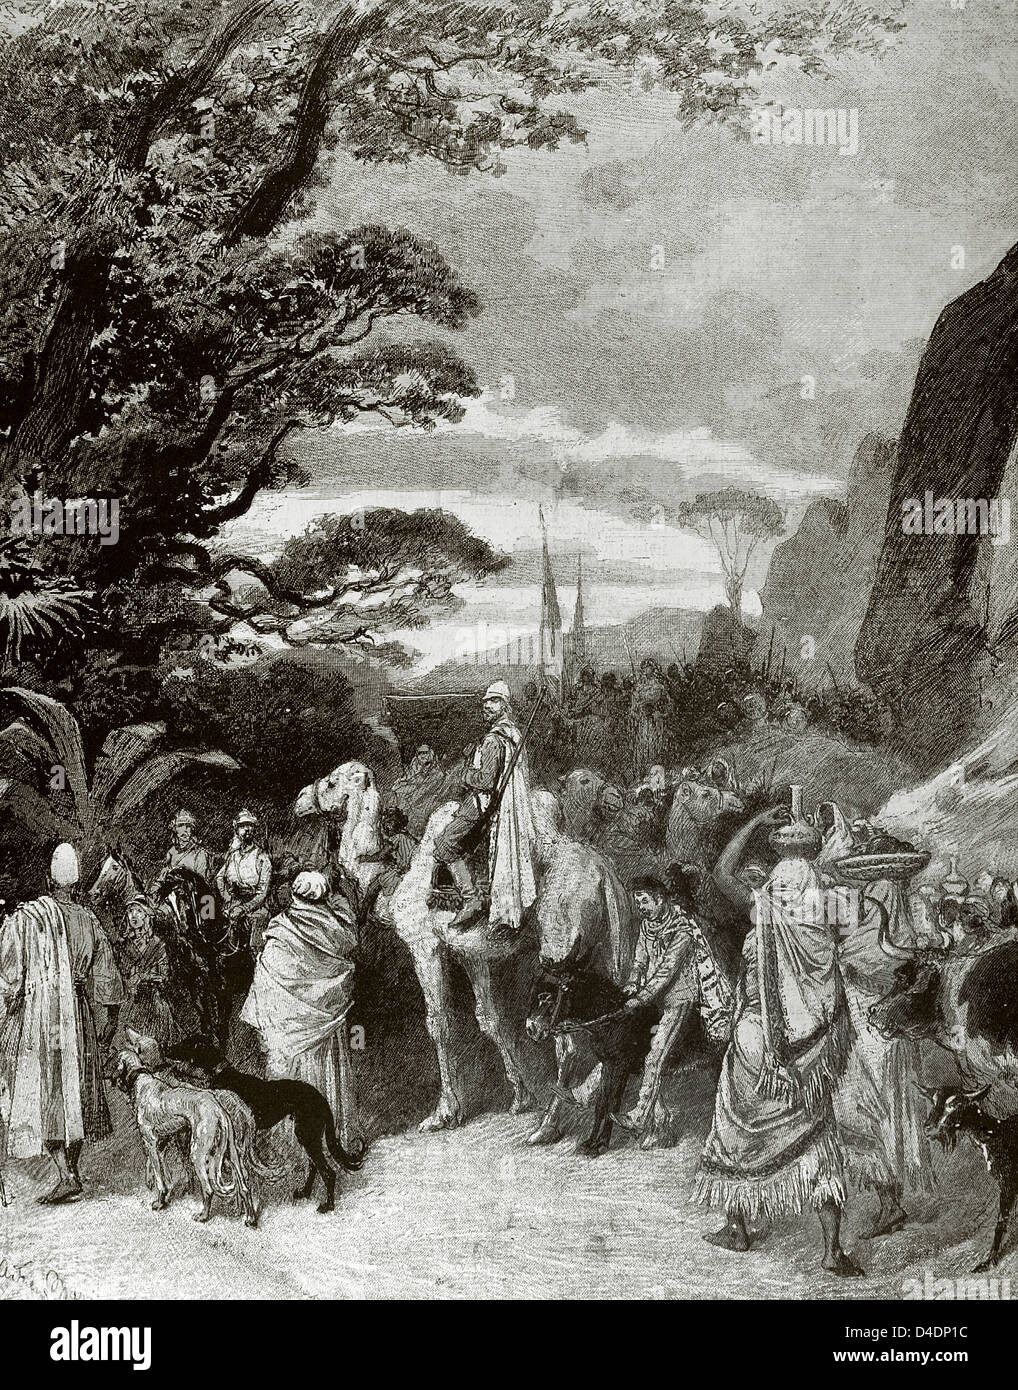 Adolphe Belot (1829-1890). French dramatist and novelist. The Black Venus: Journey to Central Africa. The Caravan. - Stock Image